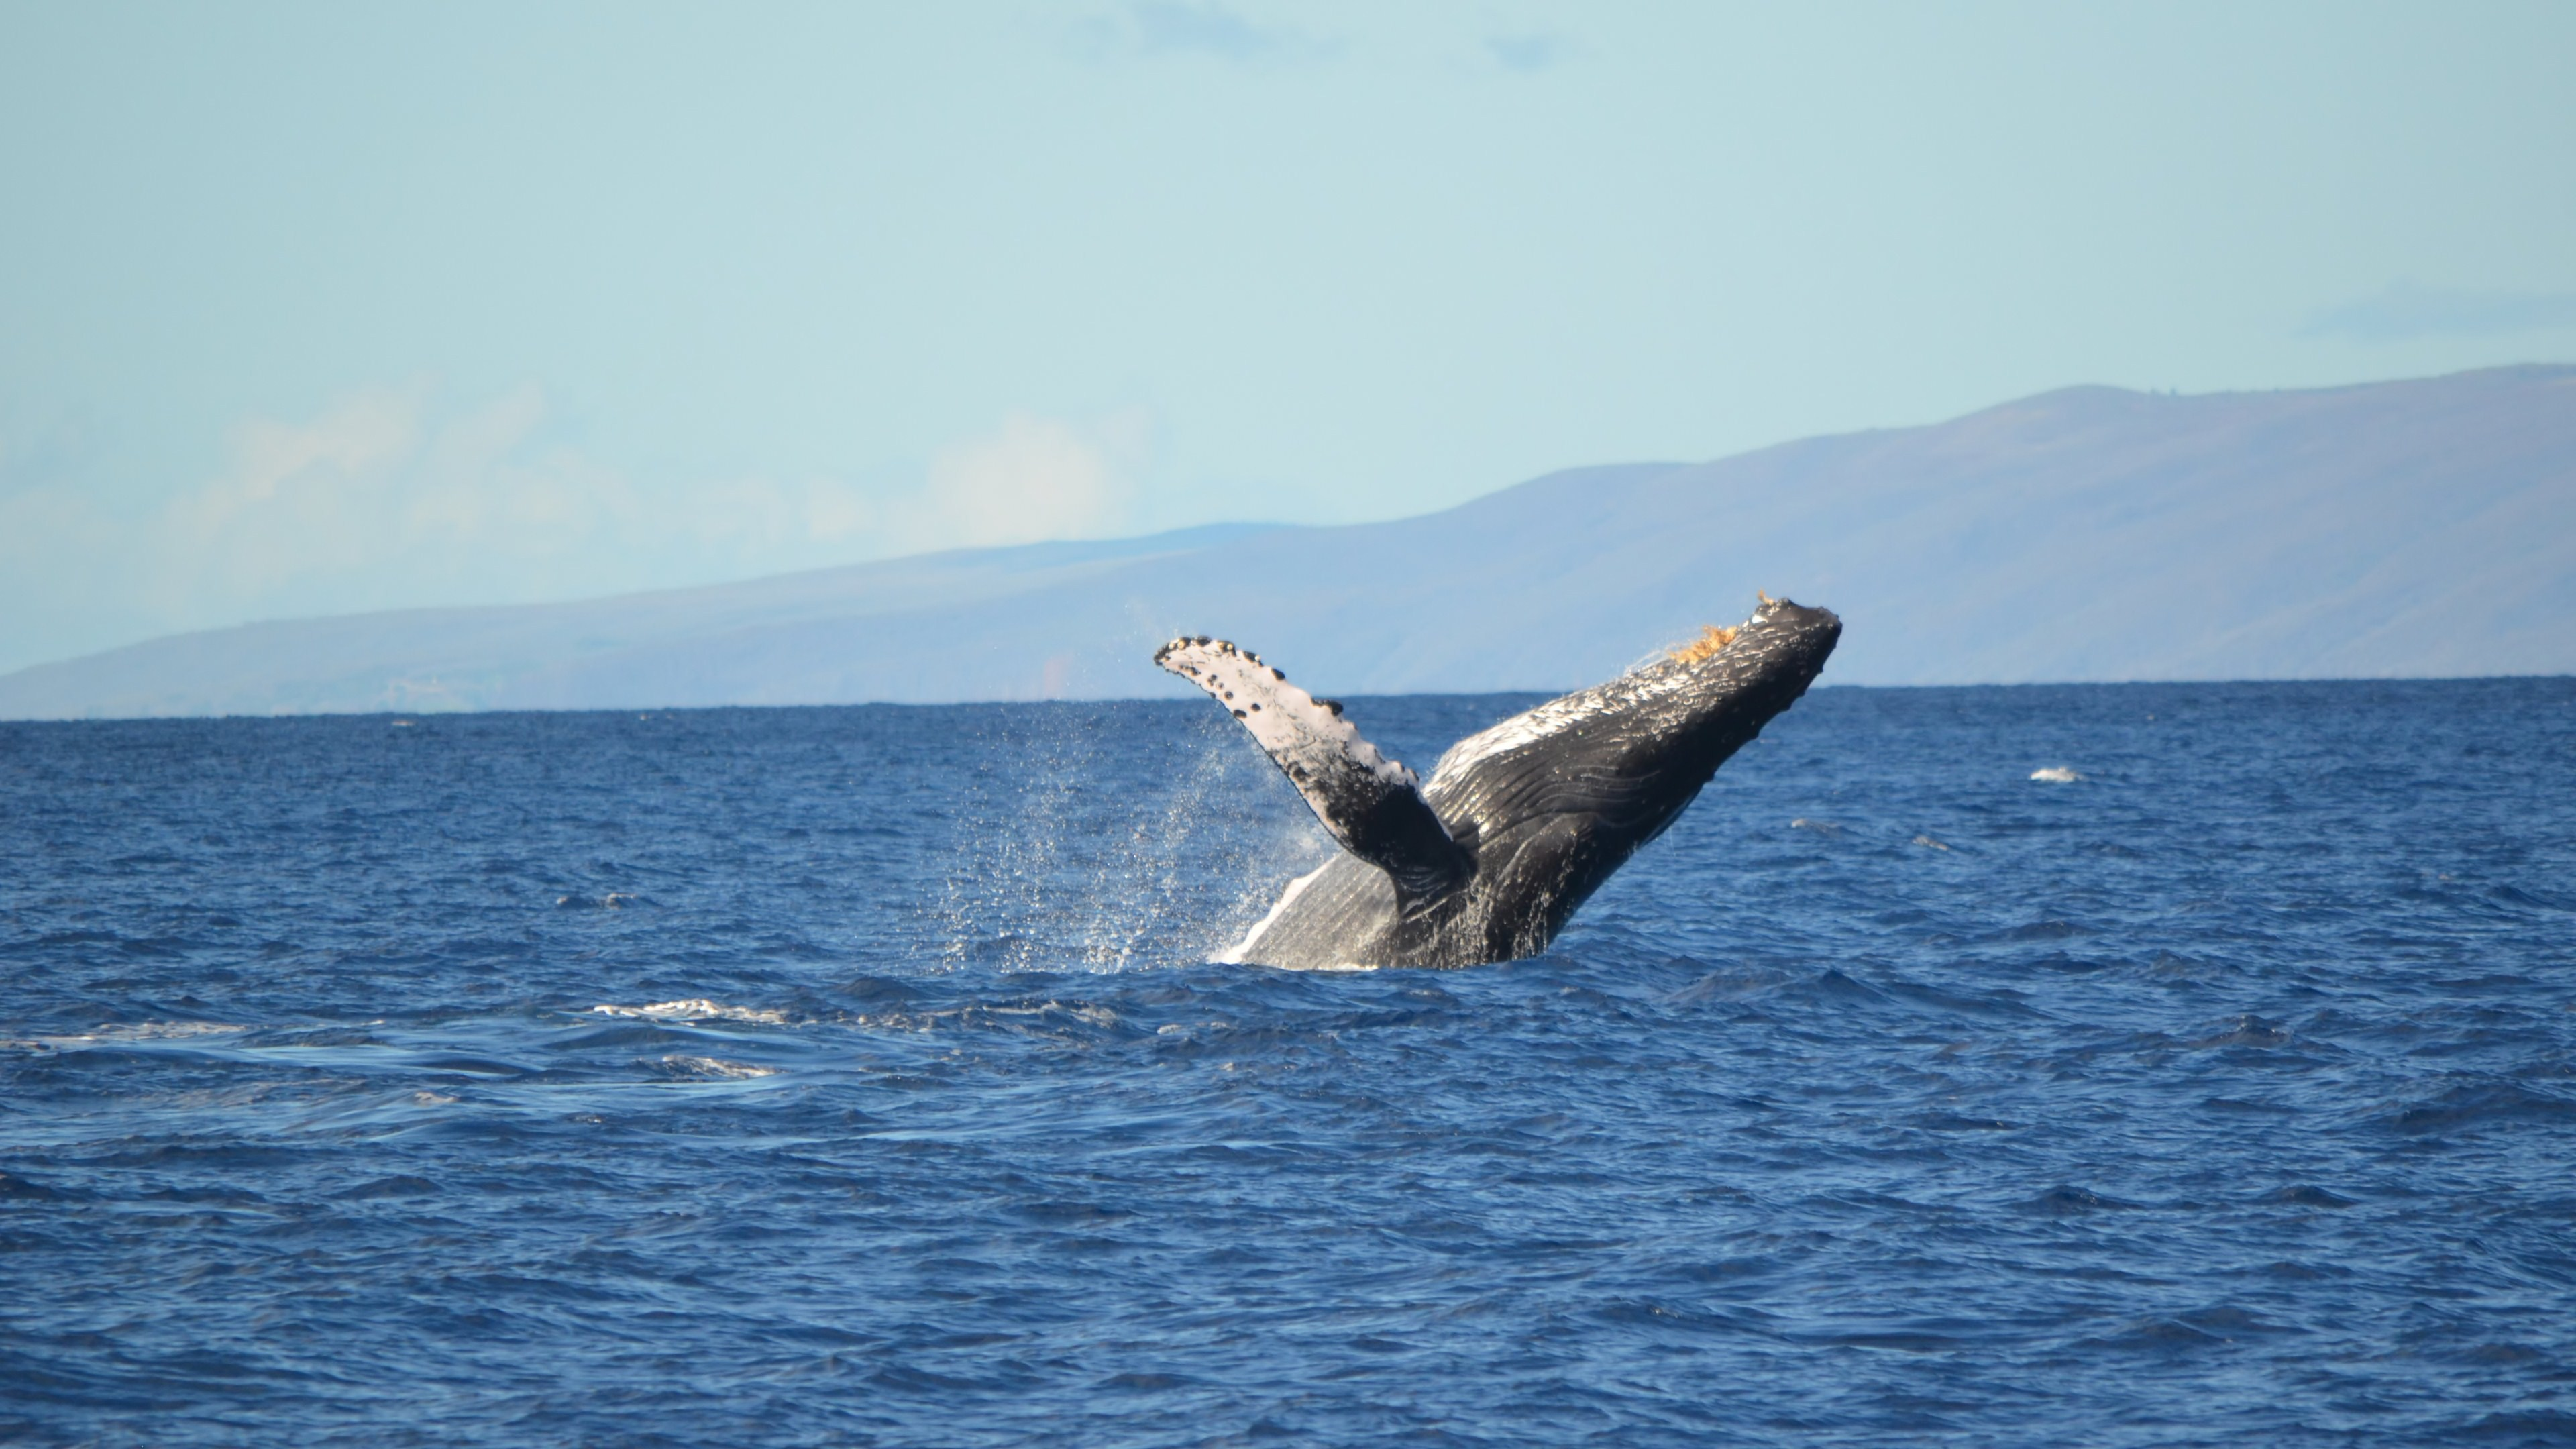 Whale 4k ultra hd wallpaper and background image 3840x2160 id 478053 - Background images 4k hd ...